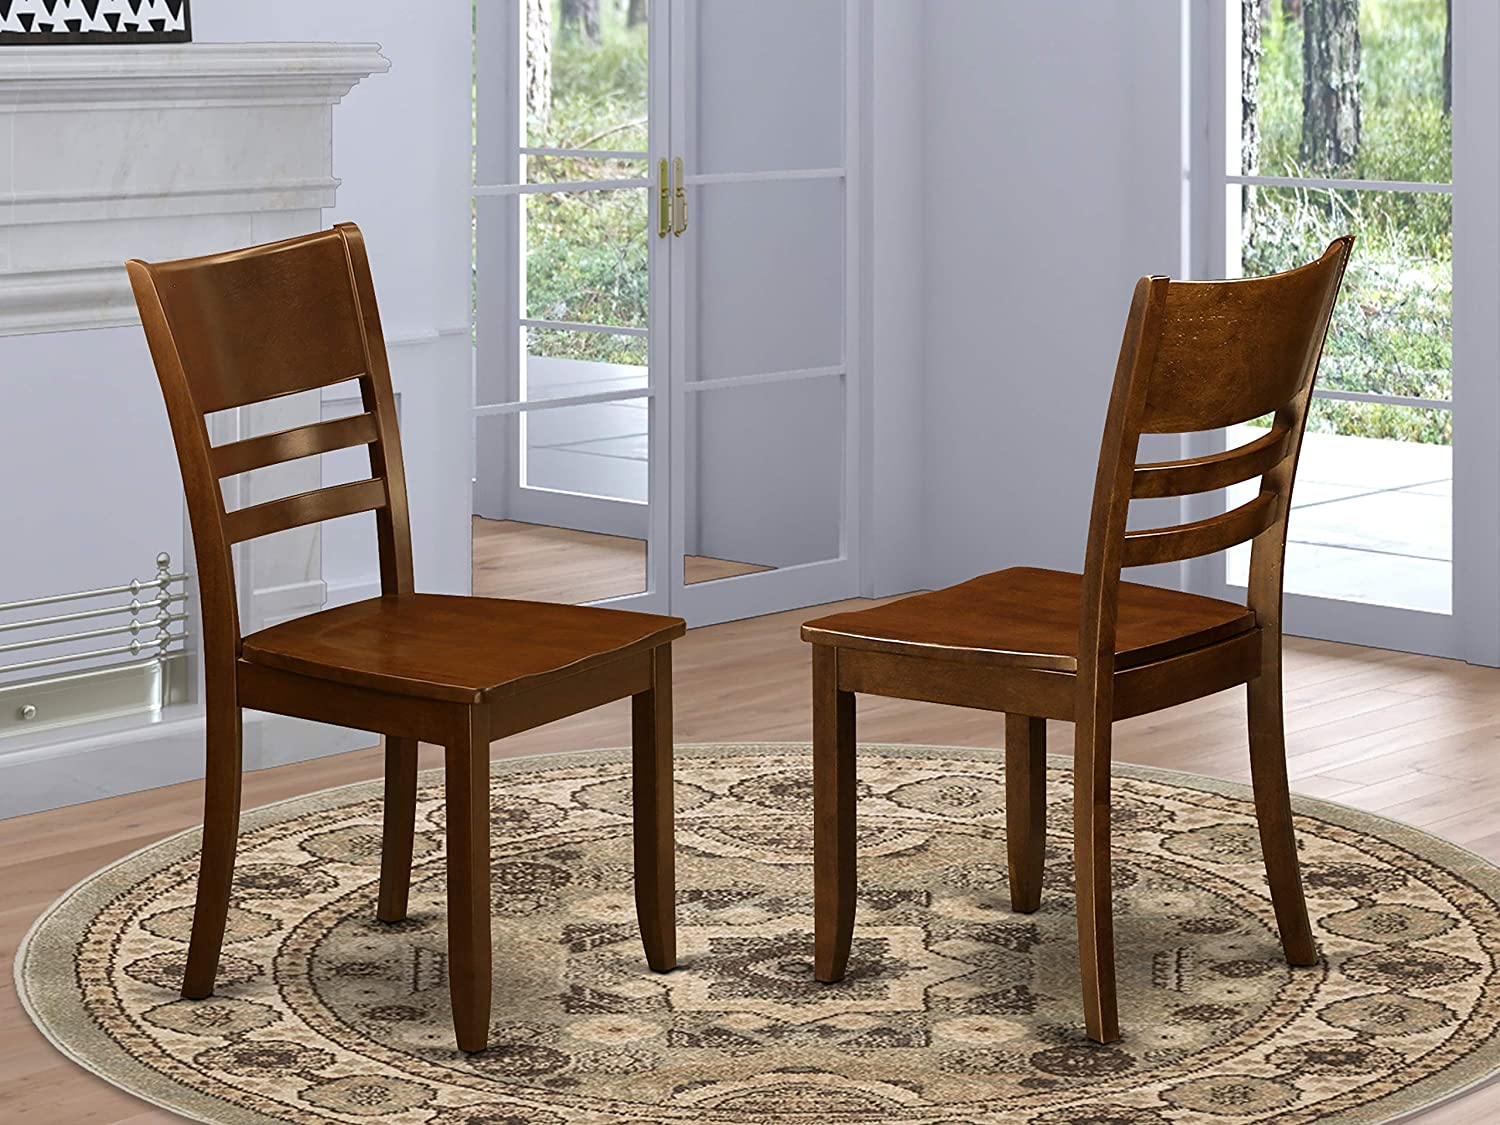 Lynfield Dining Chair with Wood Seat in Espresso Finish